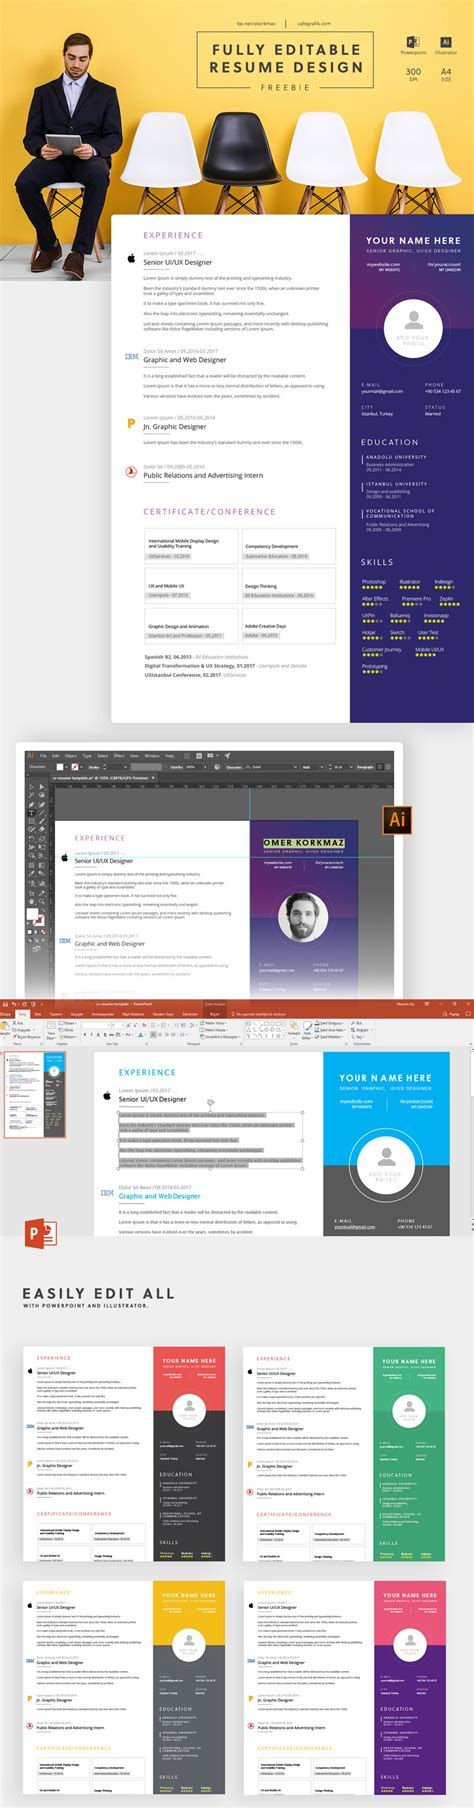 Creative Resume Template Illustrator And Powerpoint Bypeople Adobe Illustrator Presentation Templates